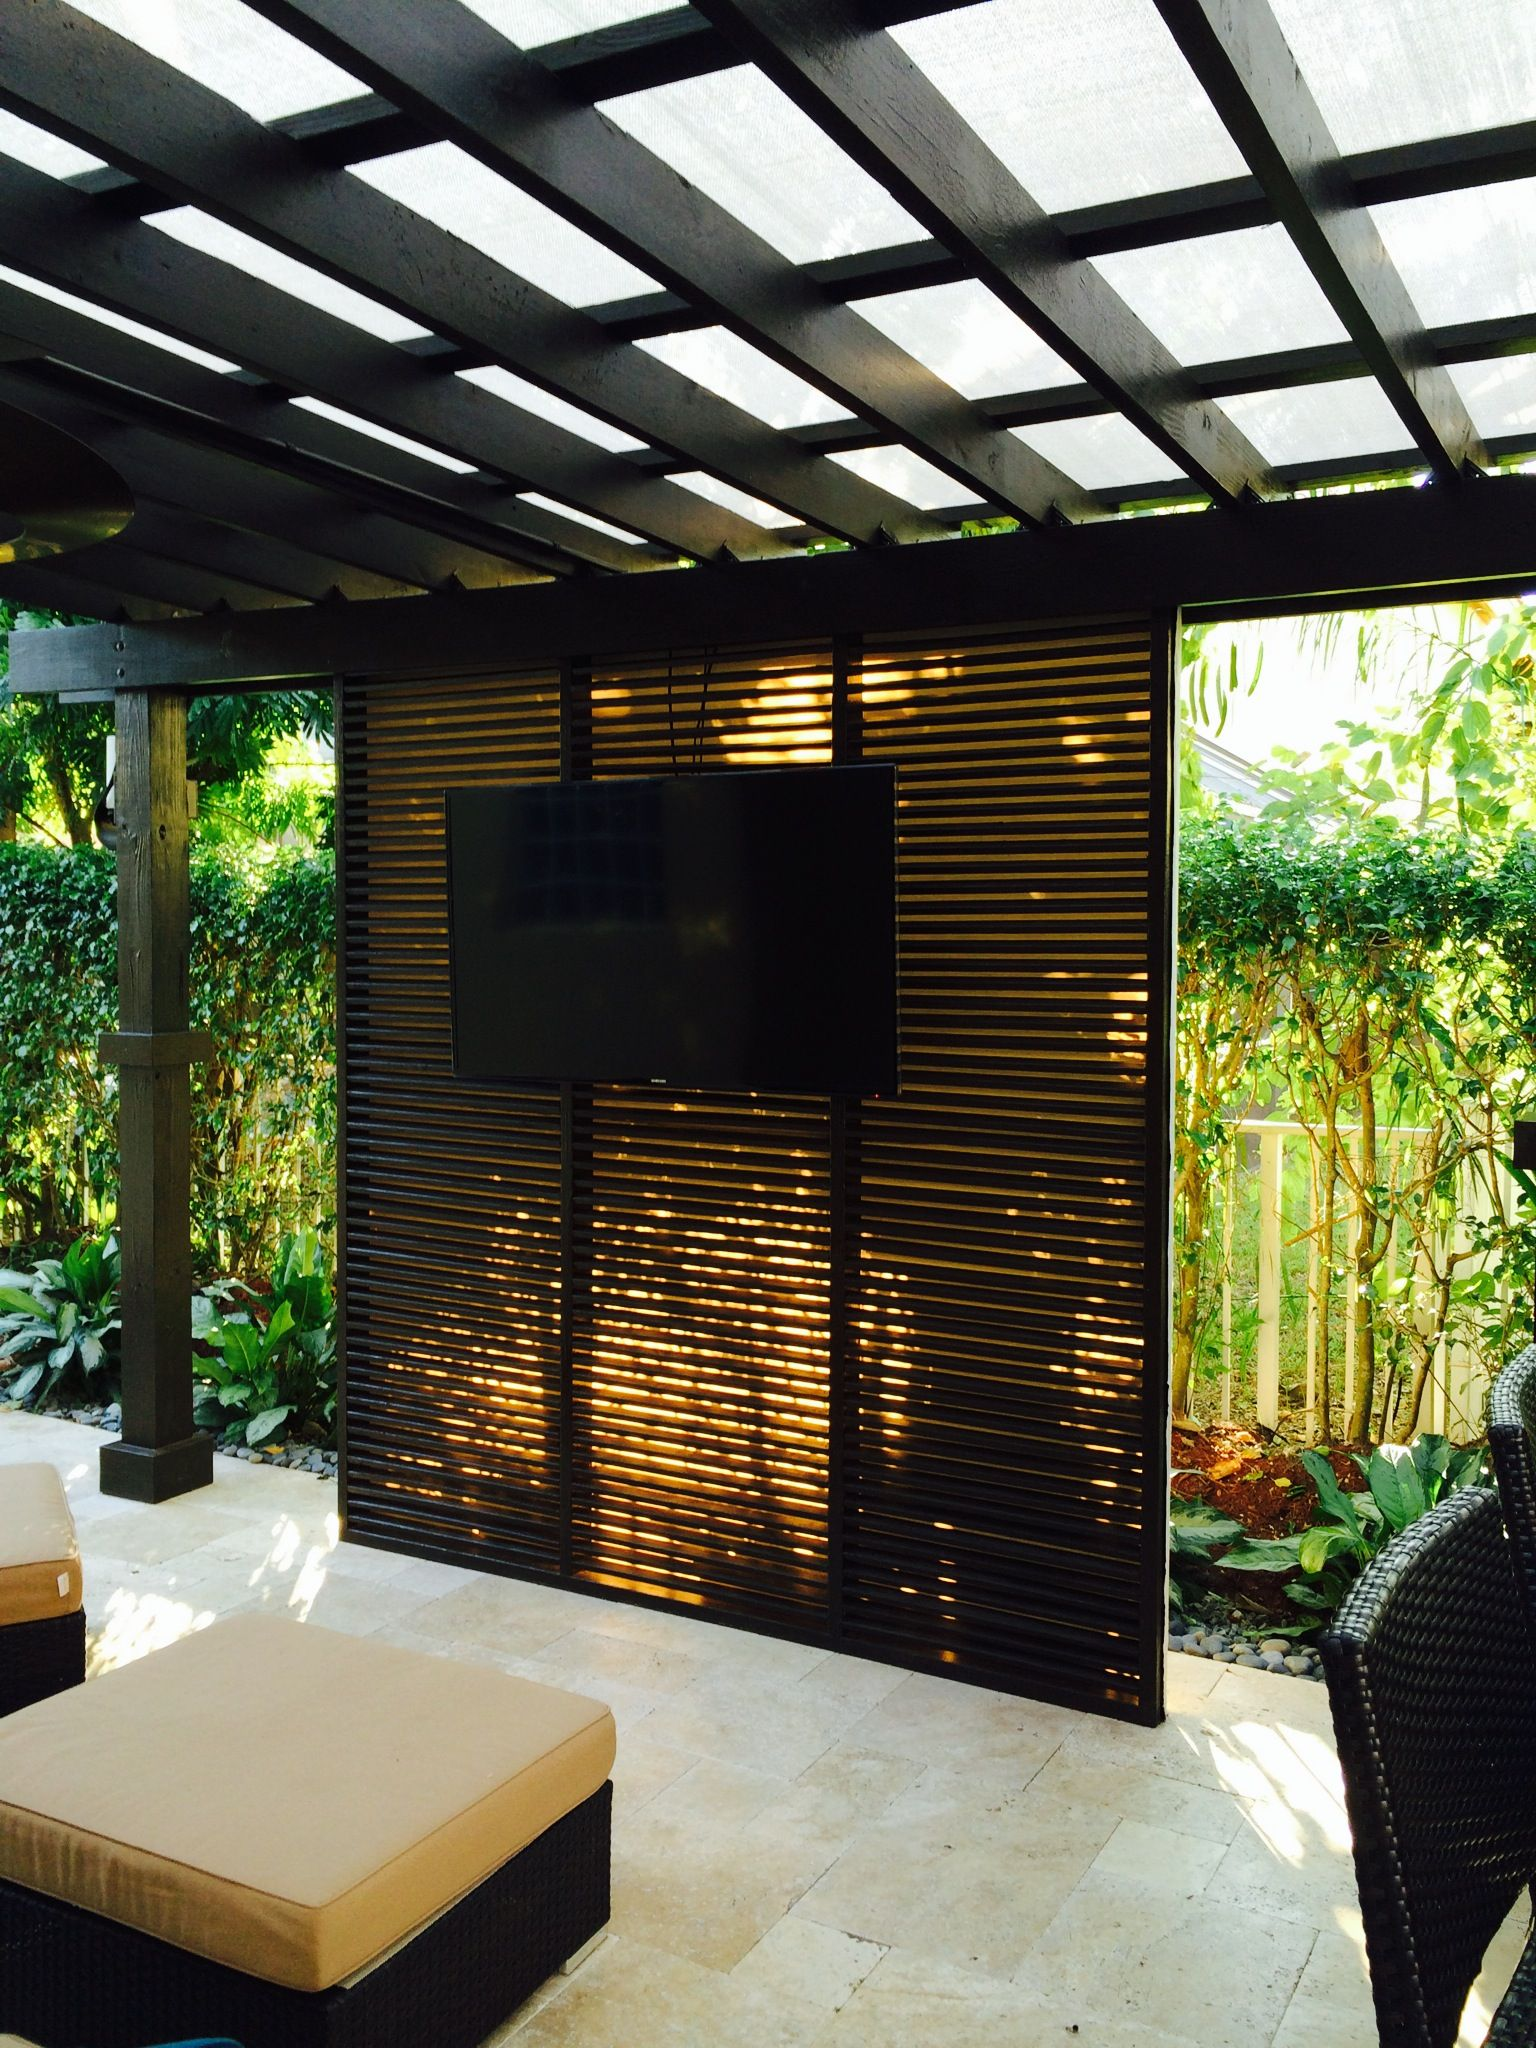 Pergola shade structure for outdoor kitchen with privacy wall new